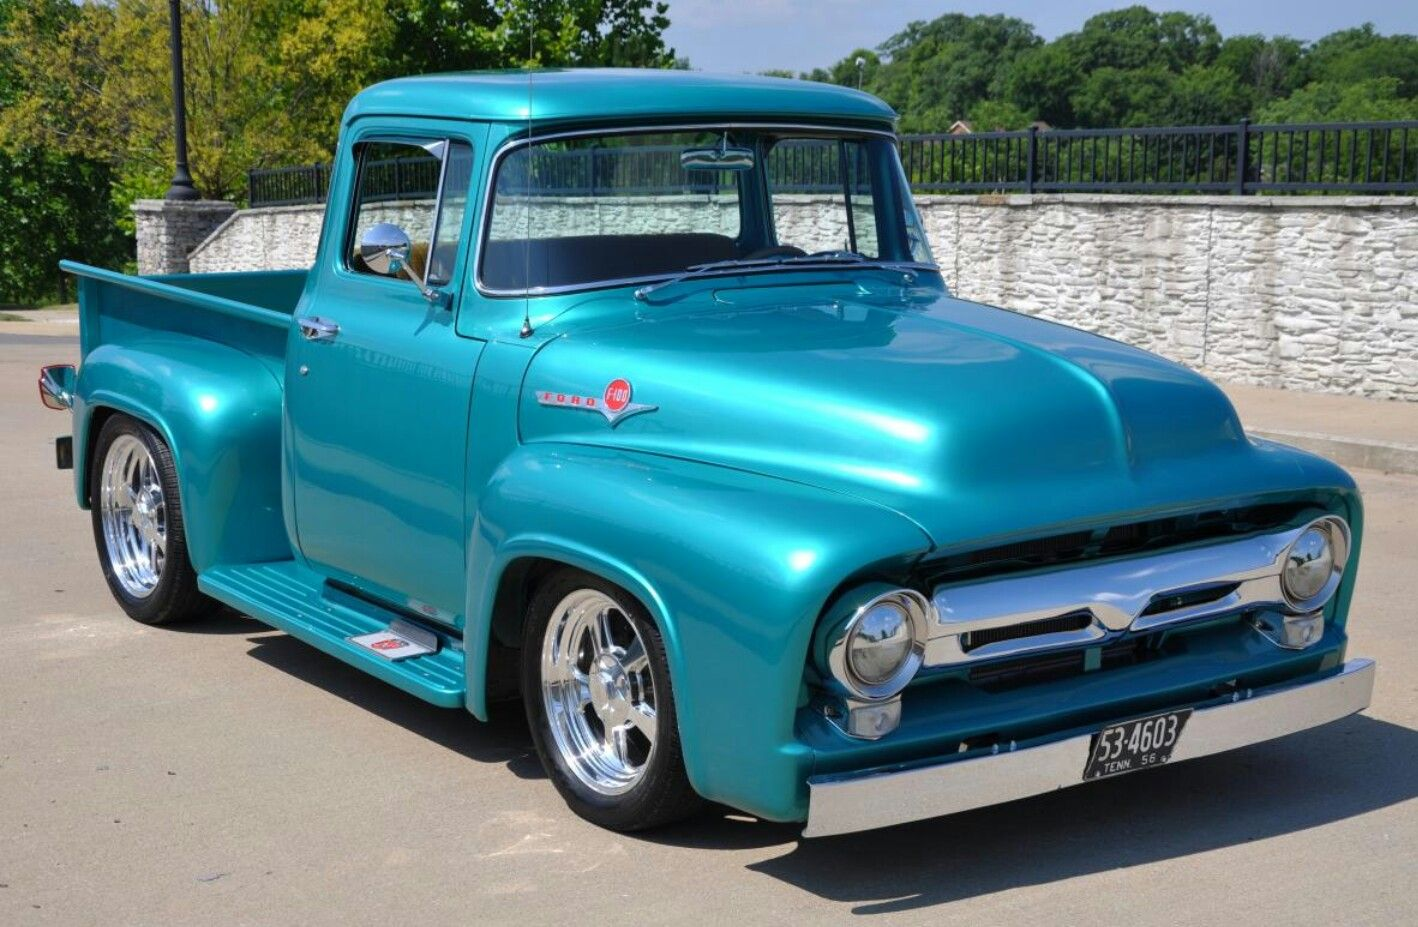 56 FORD F-100 | Hot Rods | Ford pickup trucks, 56 ford ...1956 Ford F100 Lifted